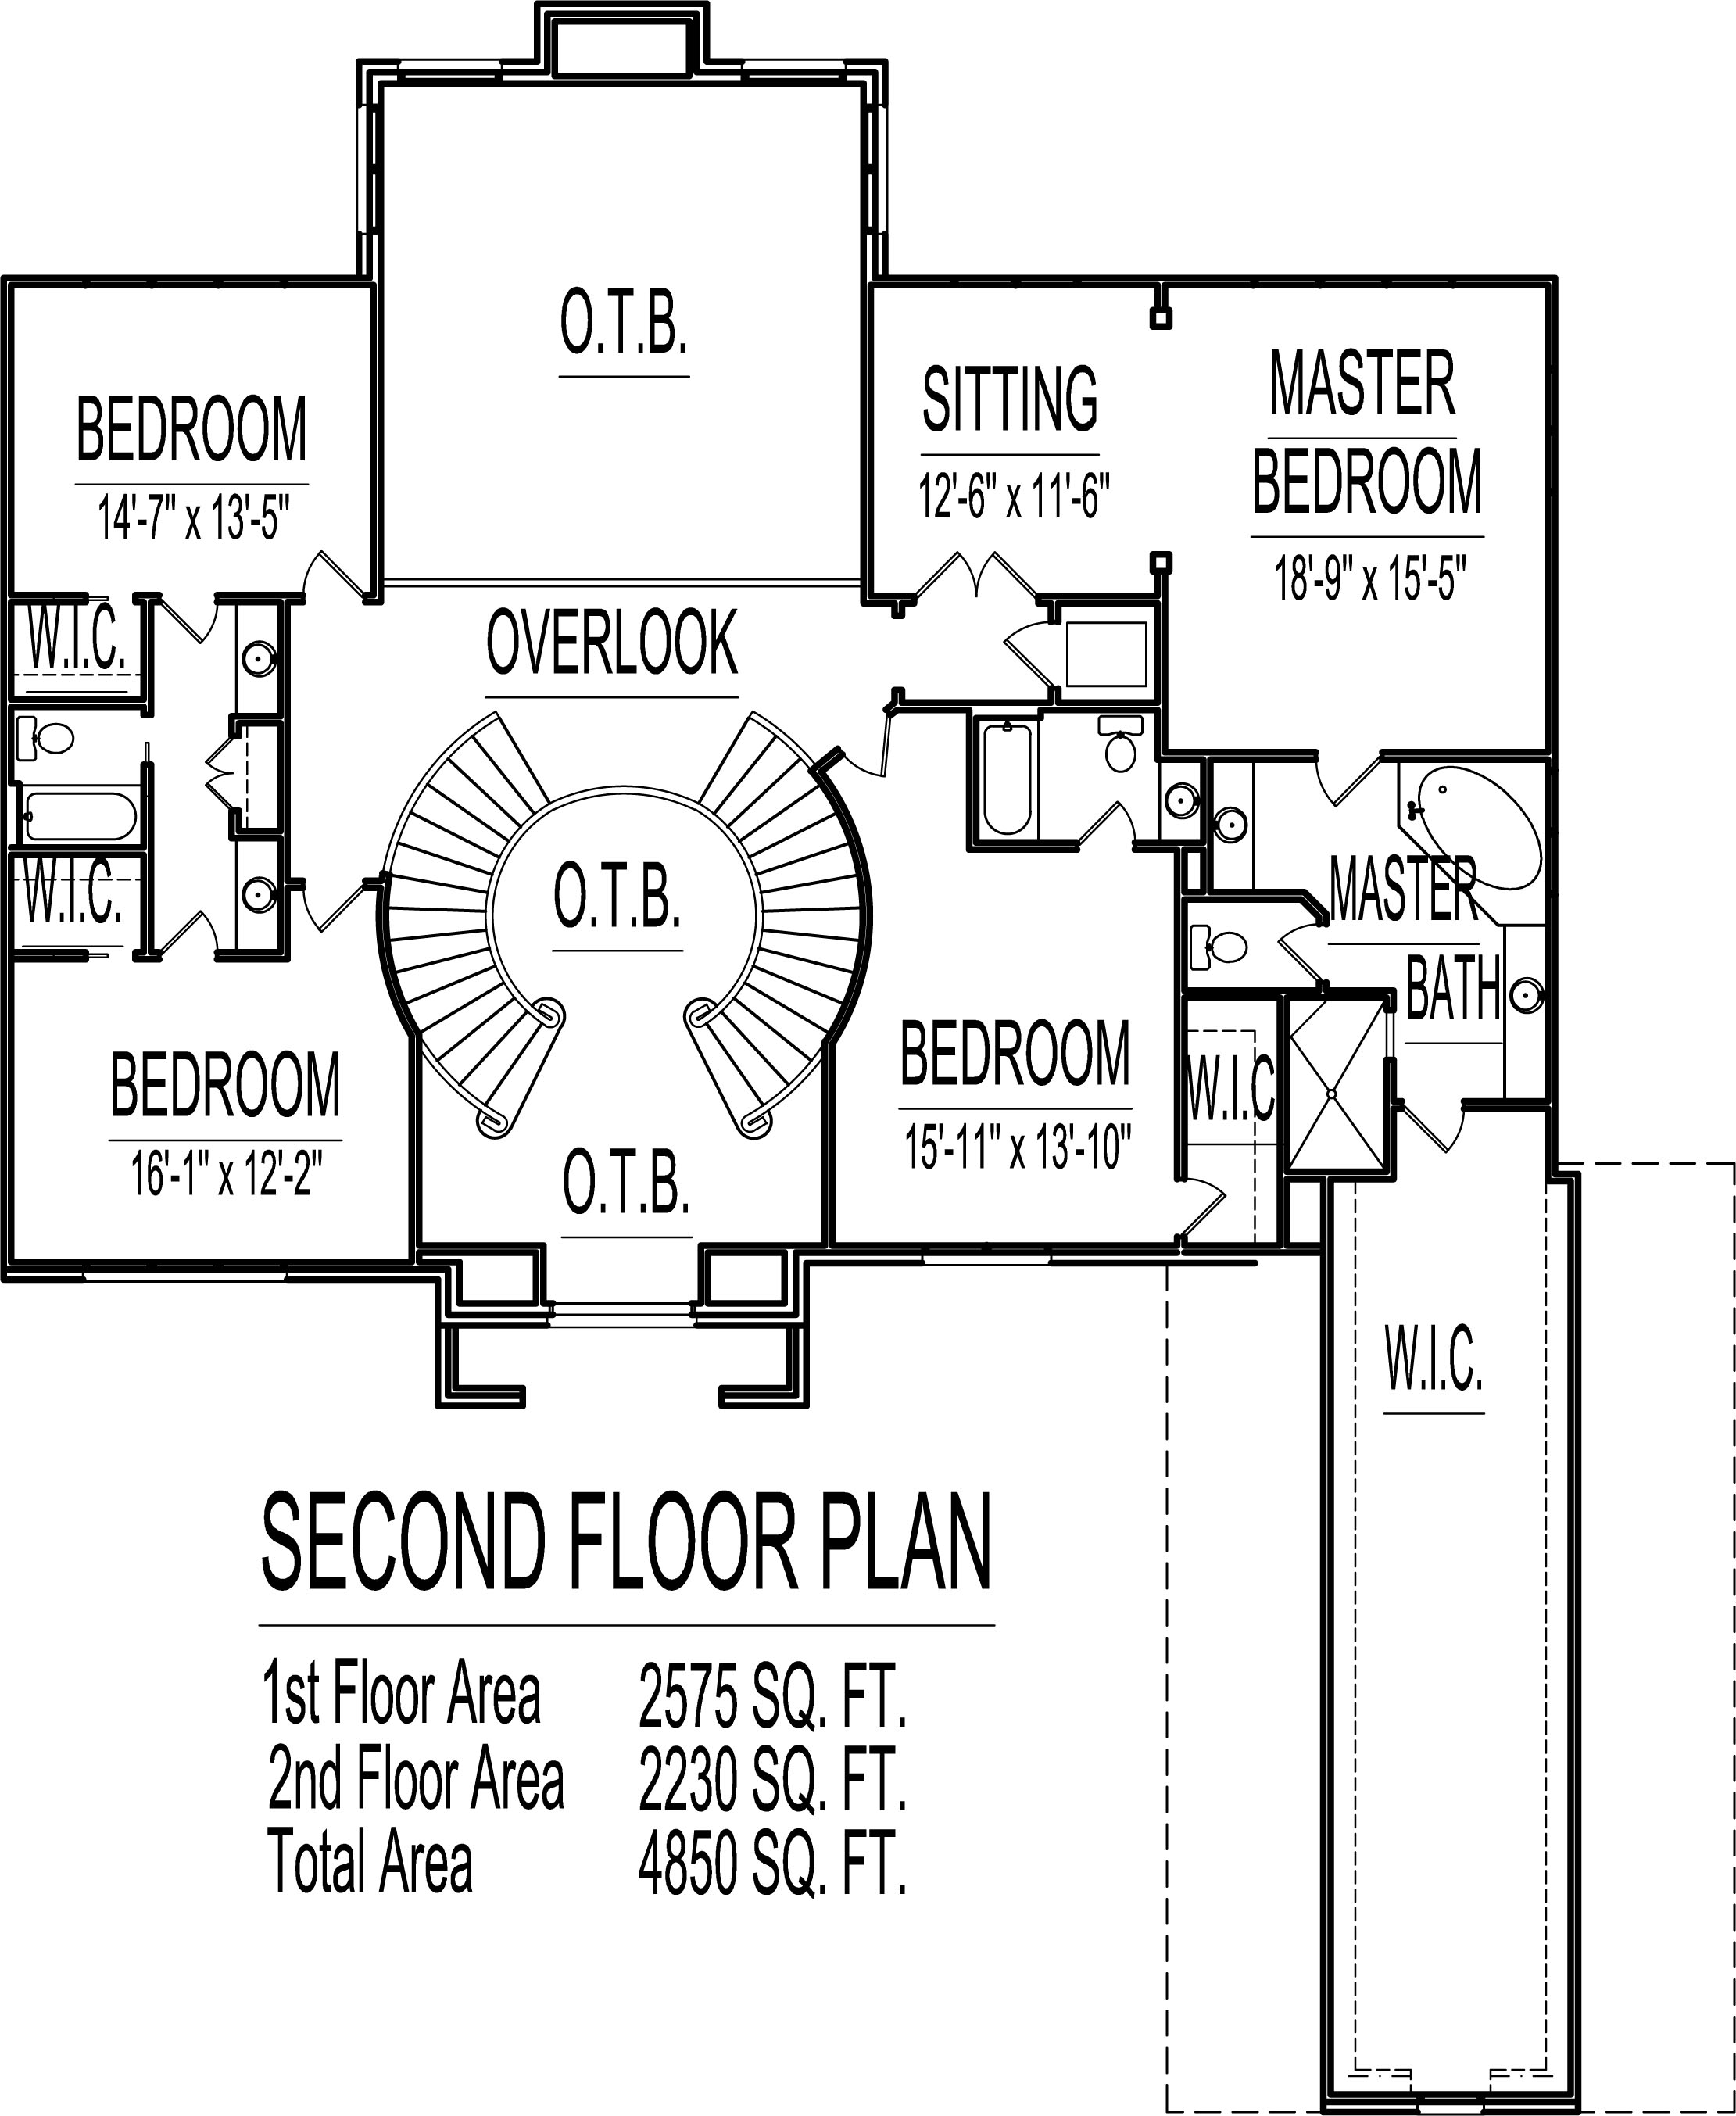 Best Kitchen Gallery: 4500 Square Foot House Floor Plans 5 Bedroom 2 Story Double Stairs of Circular Room Home Plan on rachelxblog.com